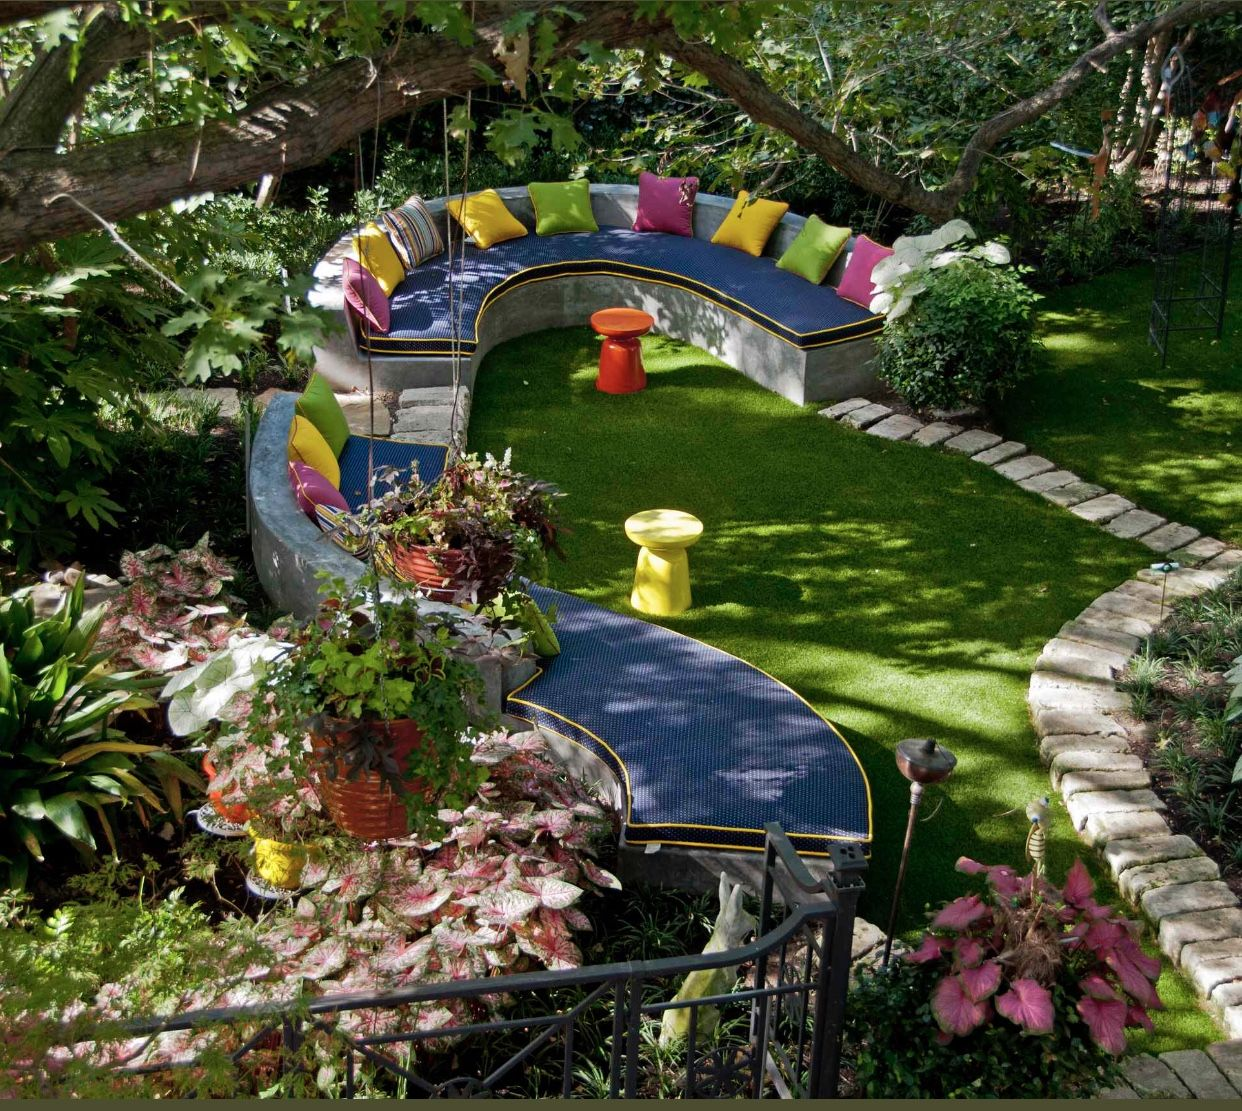 What A Great Outdoor Space So Colorful And Vibrate It Will Uplift Anyone S Day Awesome Job Done Backyard Landscaping Designs Garden Seating Colorful Garden